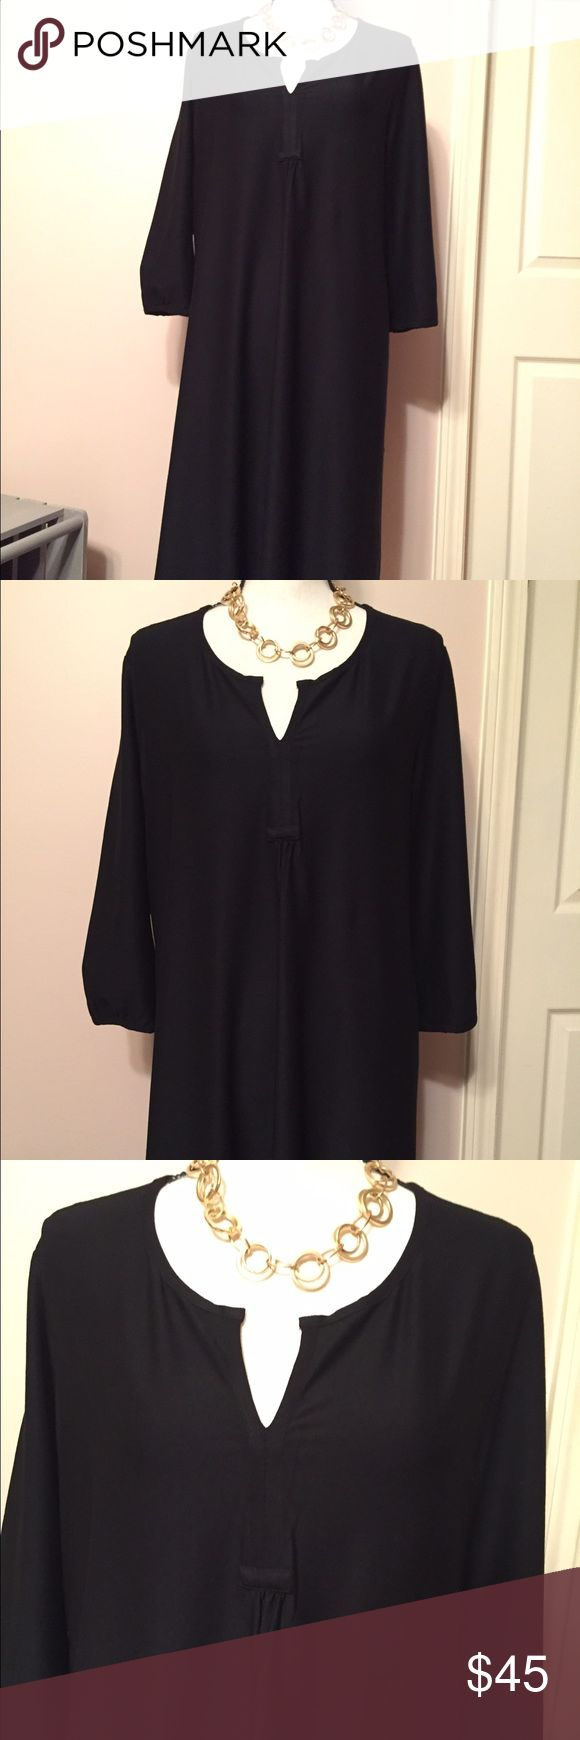 "Eileen Fisher Black Tunic Dress in EUC Genuine Eileen Fisher Black Tunic Dress Size Large. 20.5"" Armpit to armpit. 41"" Long. See pics for fabric blend. In excellent condition from a smoke free home. Eileen Fisher Dresses Midi"